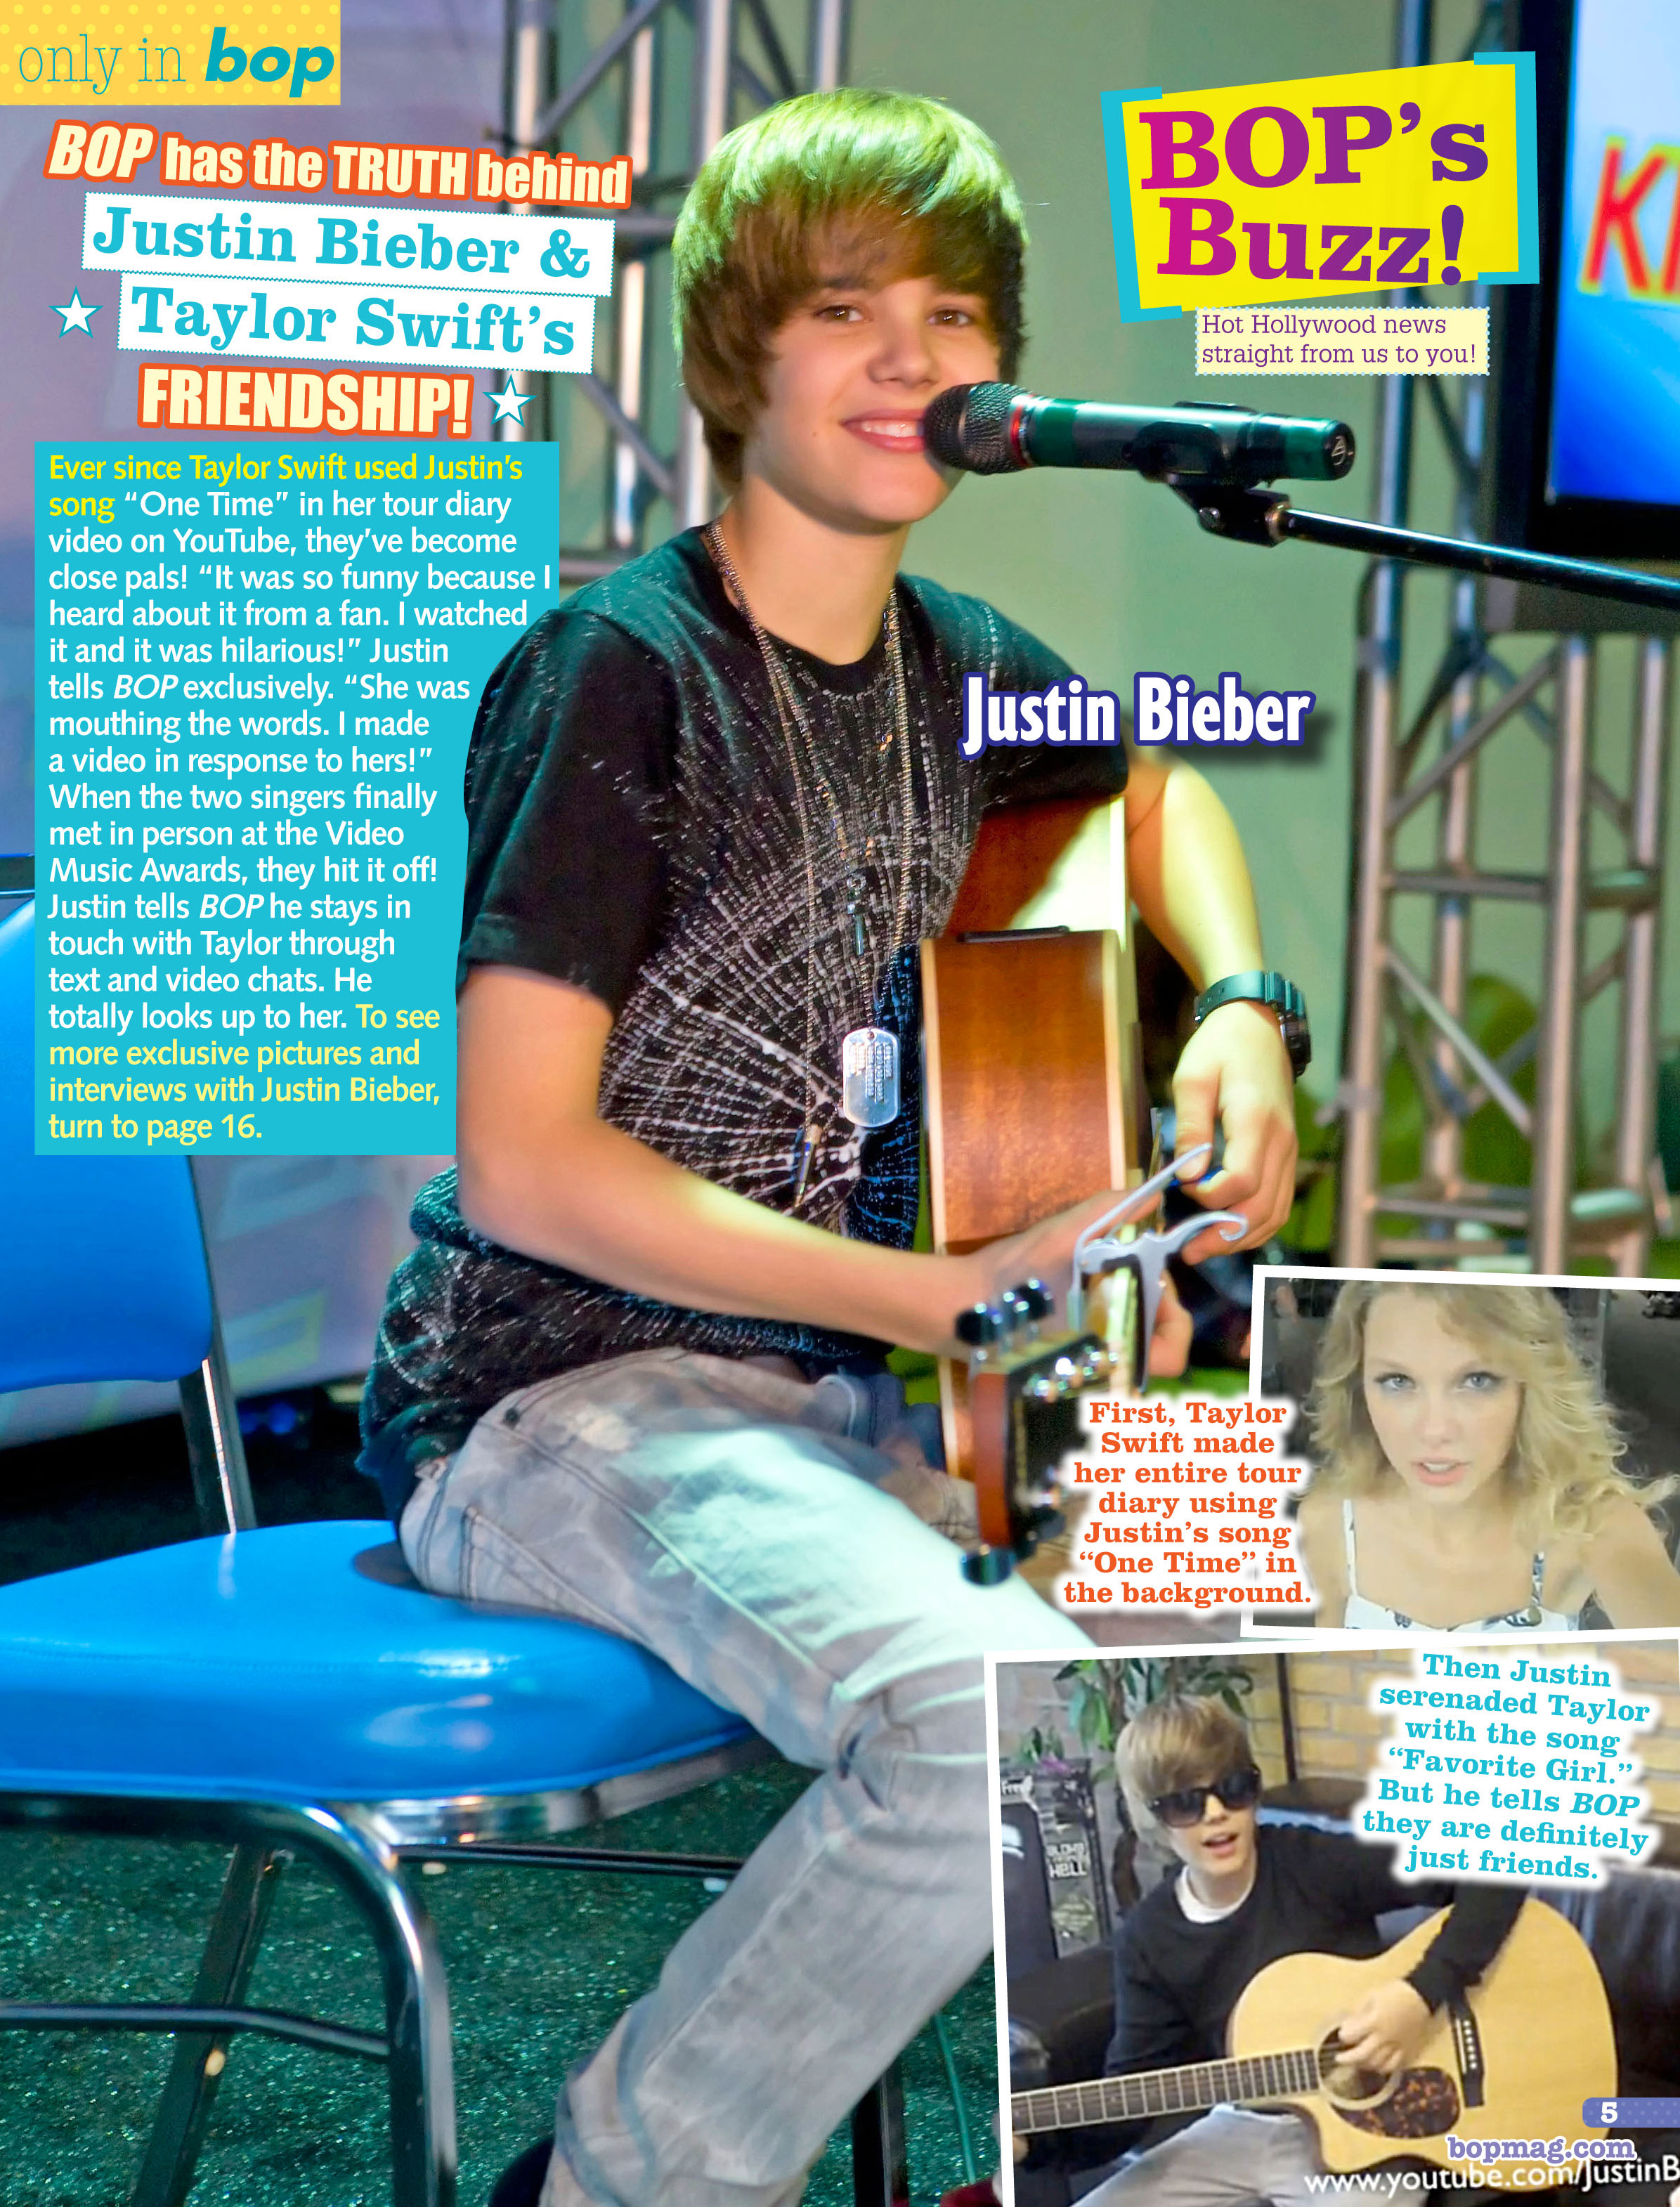 The TRUTH behind Taylor Swift & Justin Bieber's friendship REVEALED!